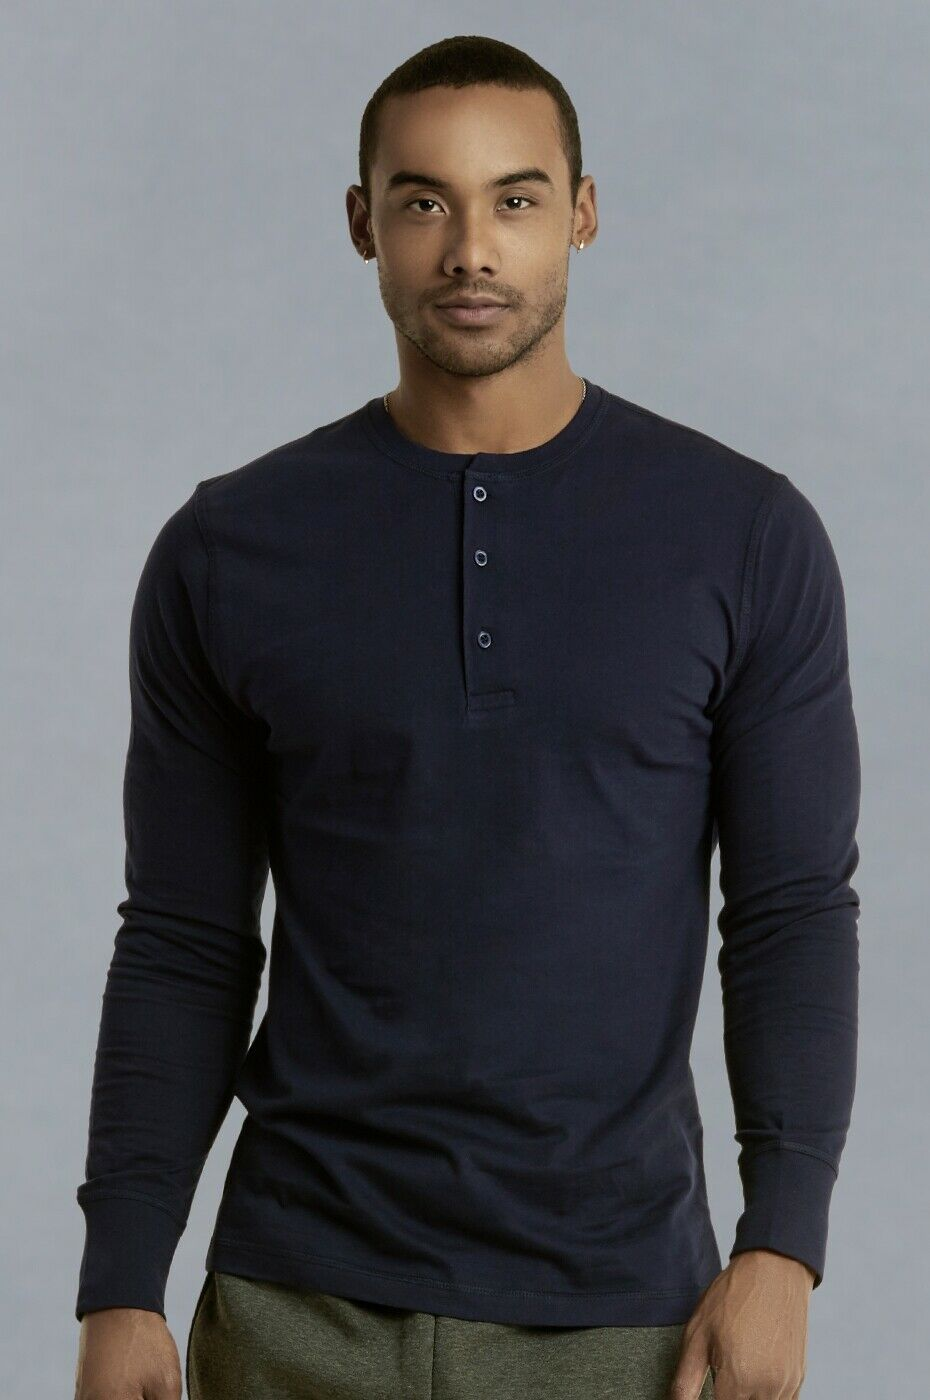 Mens Henley Long Sleeve Shirts Cotton Button Down Crew Neck Casual S M L XL XXL